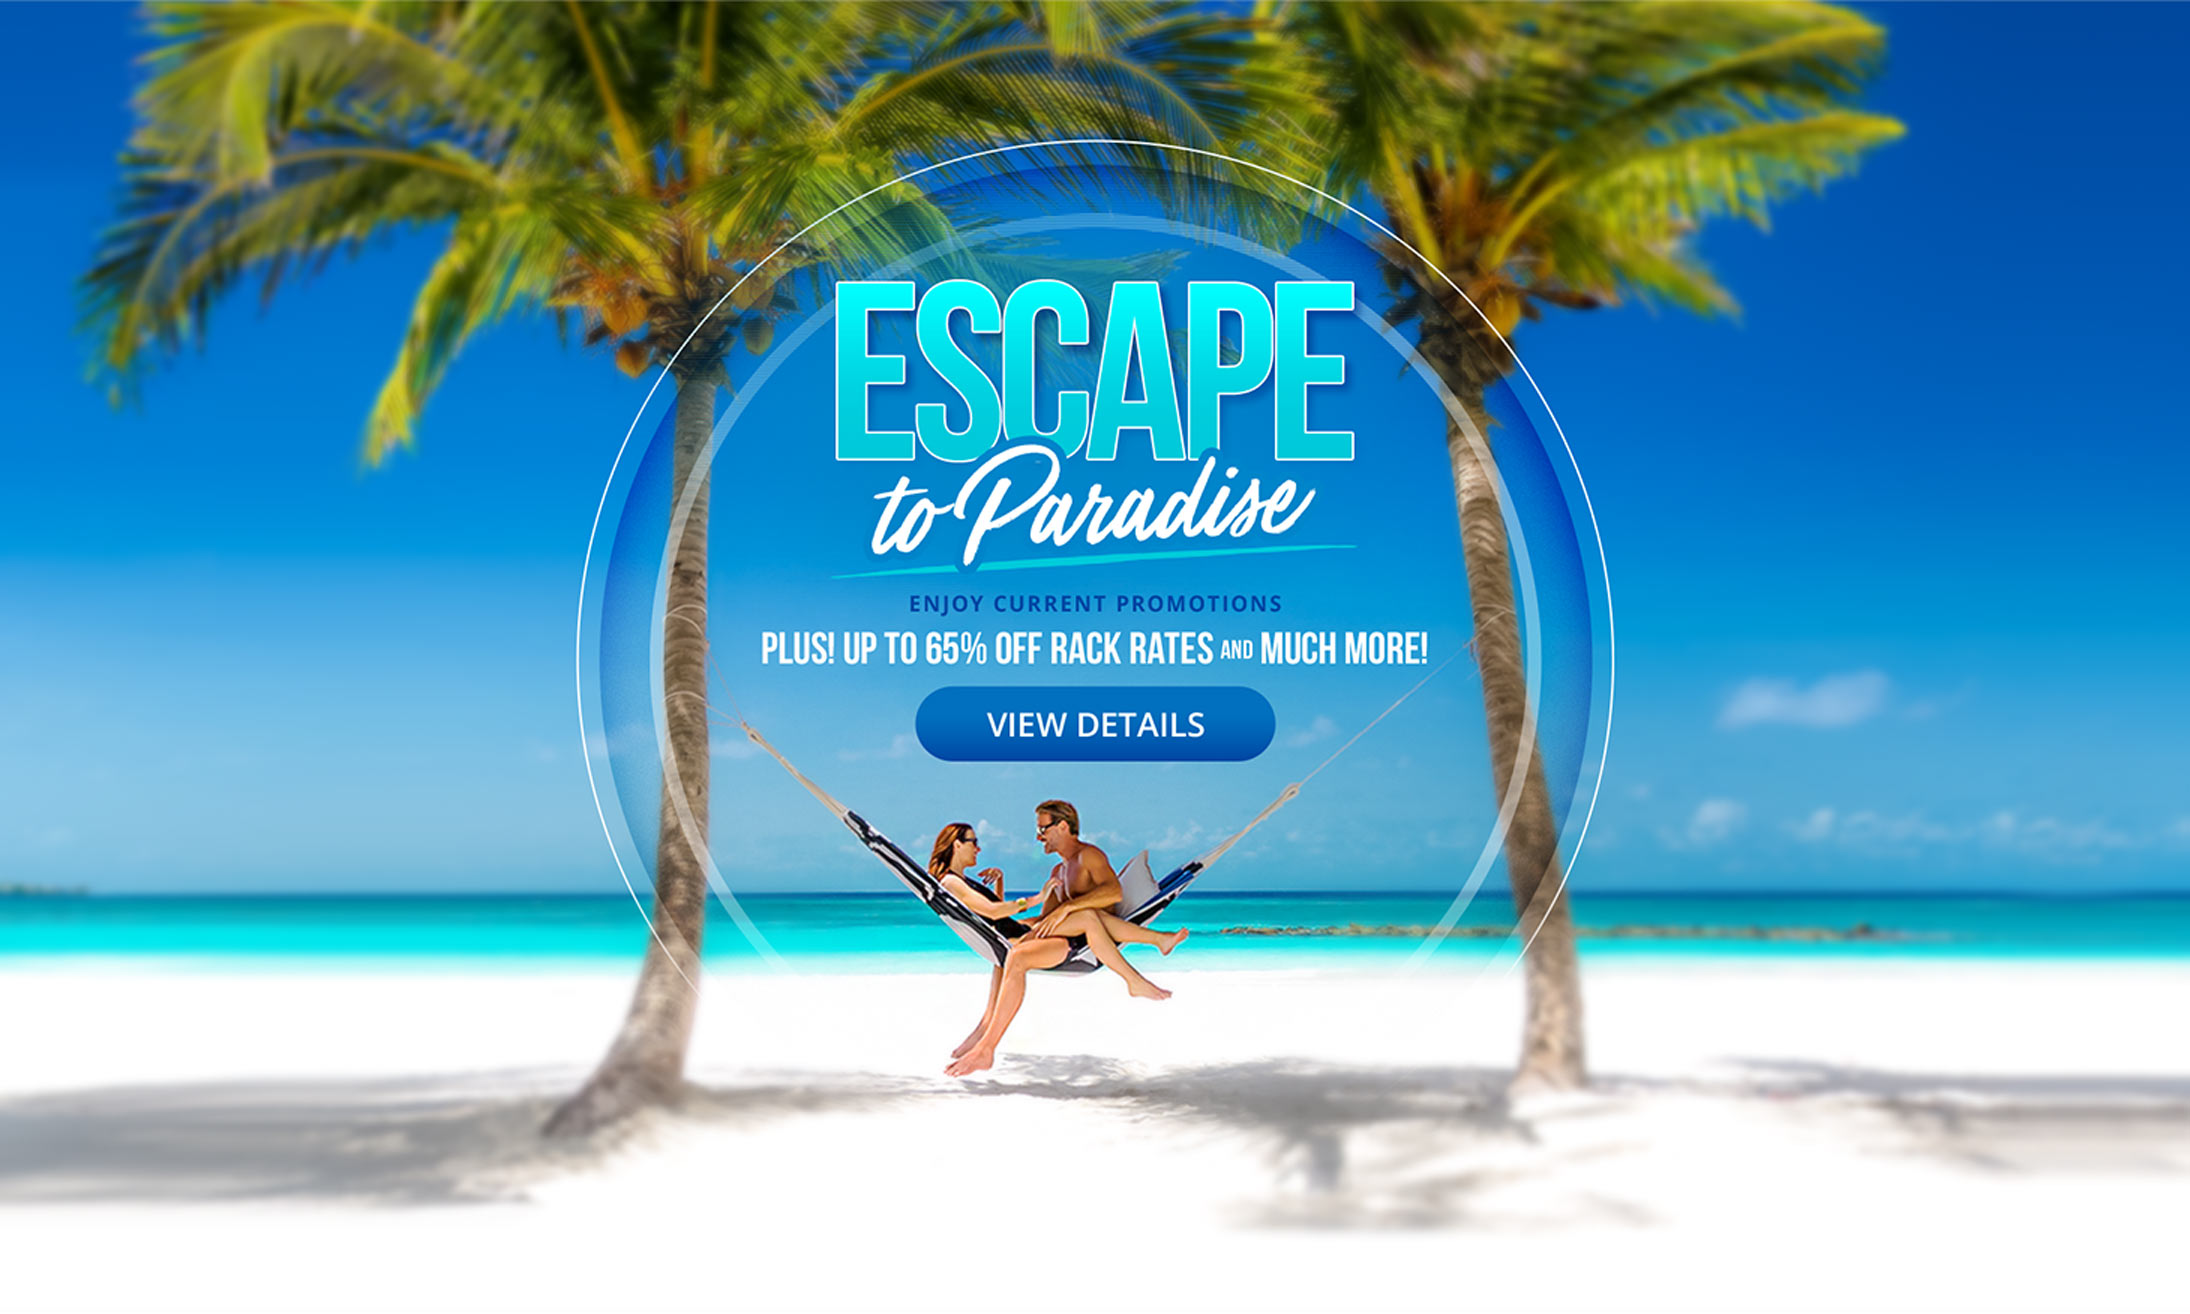 Escape to Paradise - Enjoy Current Promotions: Get Up To $1000 Instant Booking Credit, Up To 65% Off Rack Rates, And Much More!